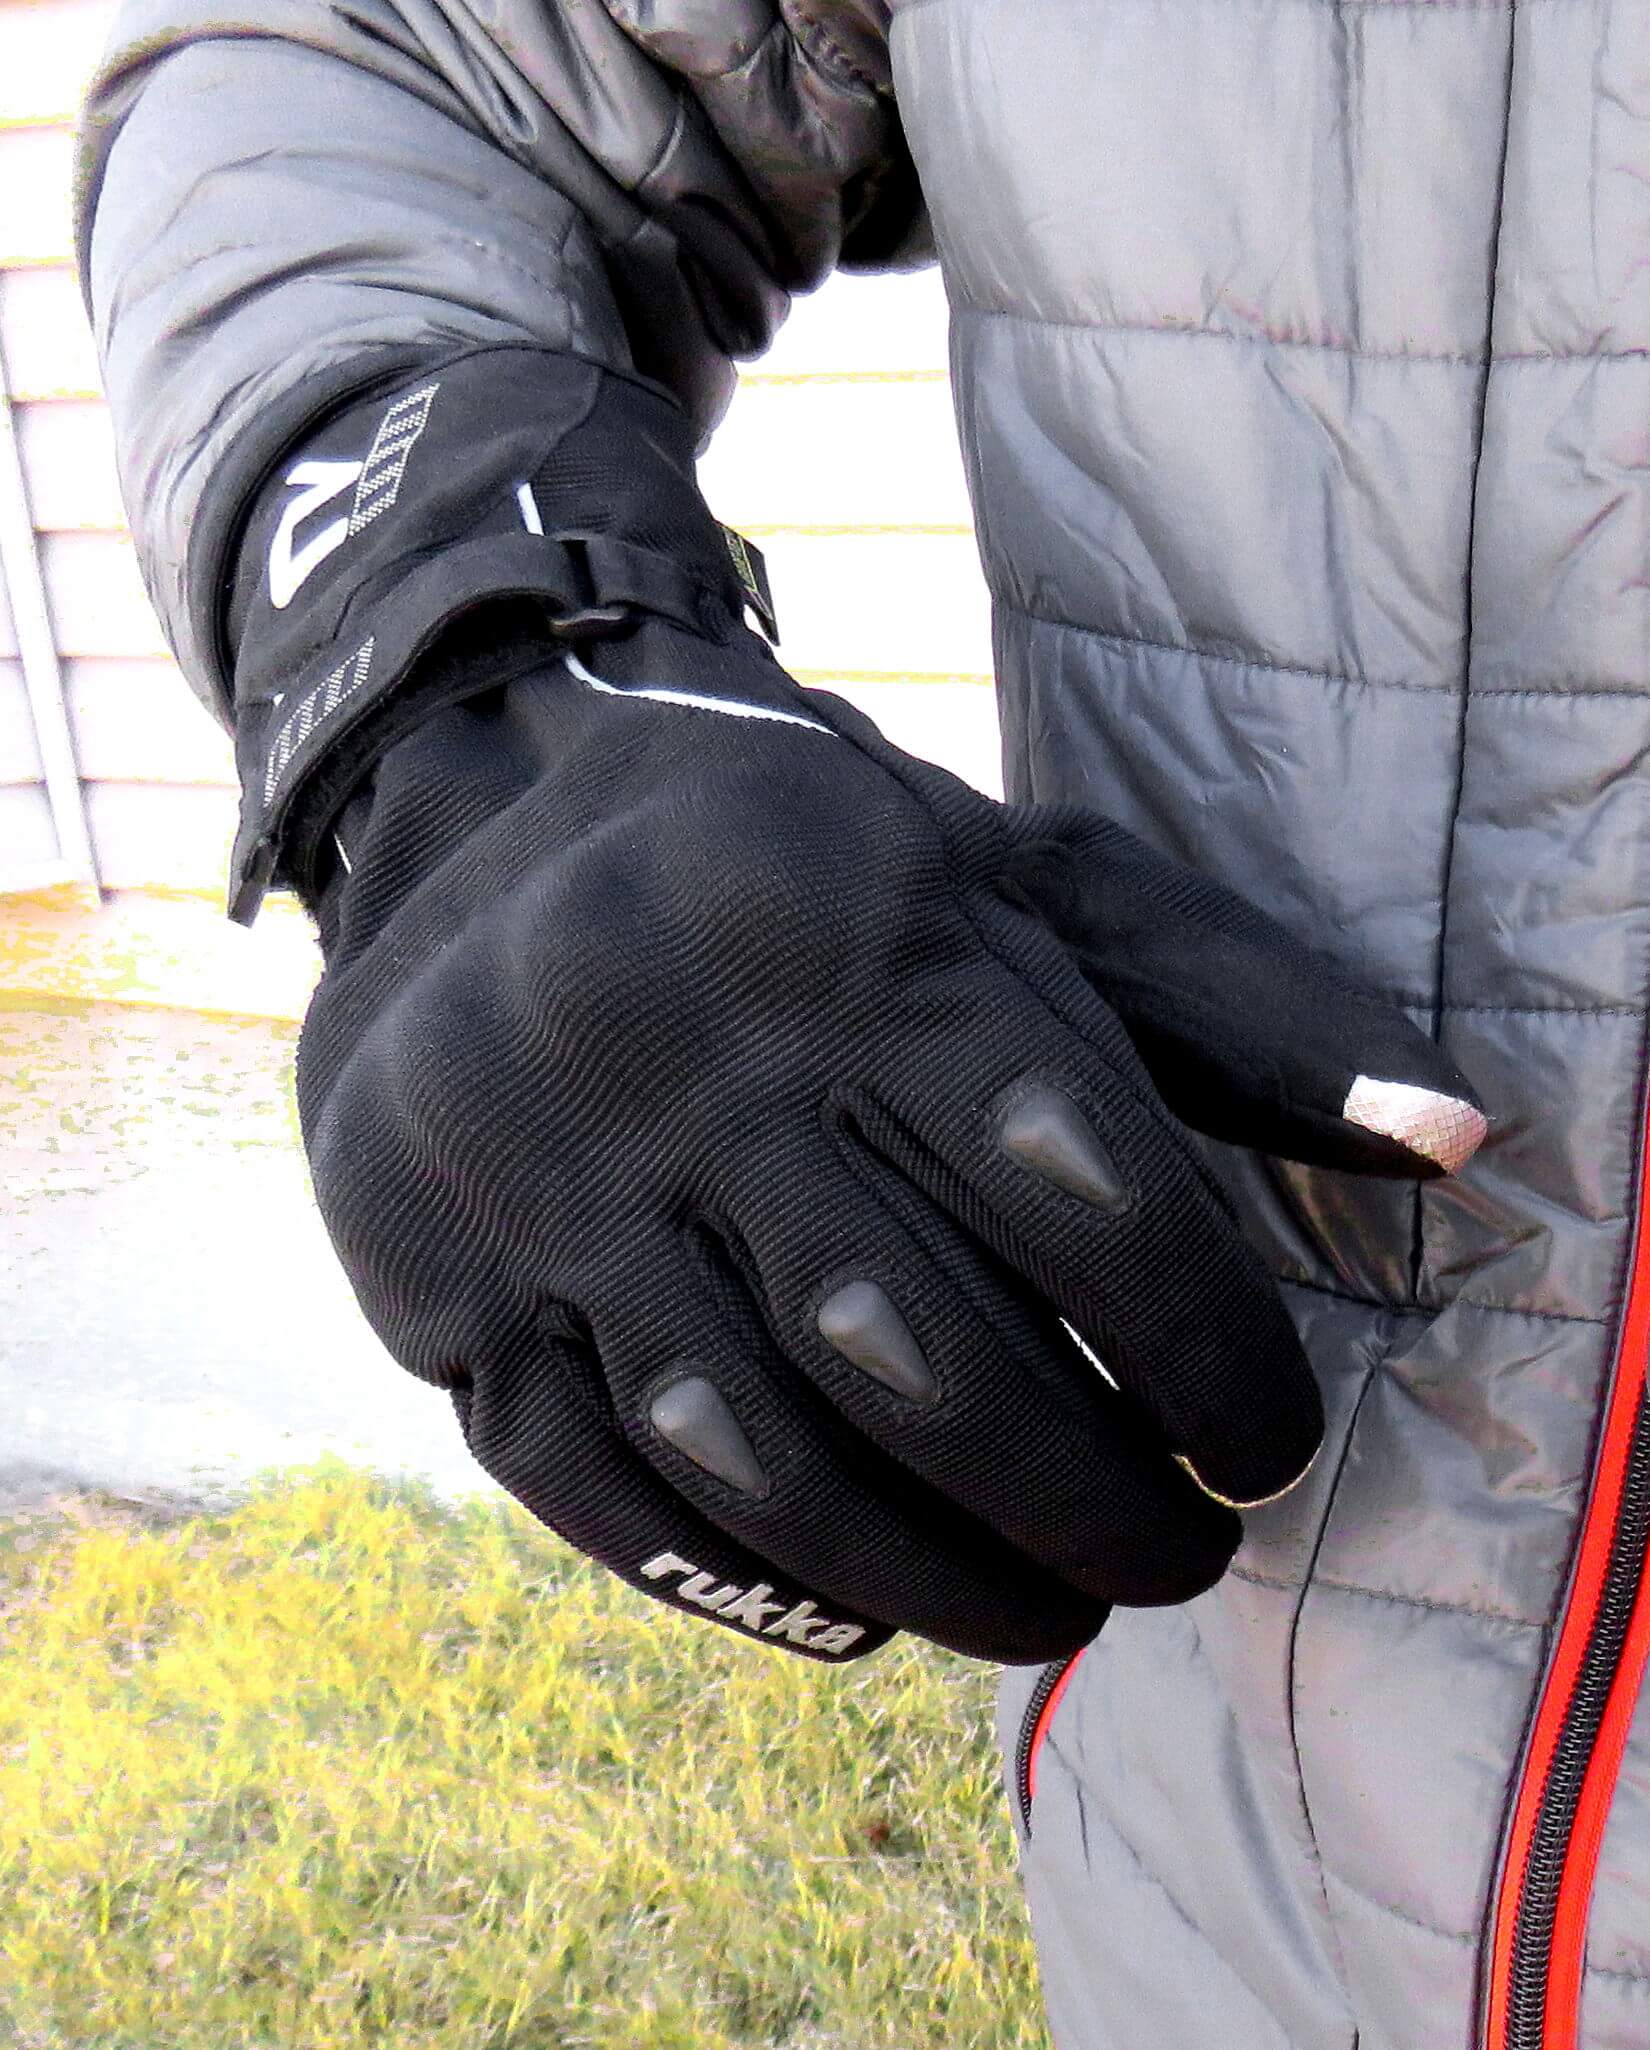 Rukka Virium Gore-Tex X-Trafit Gloves As Shown On Model